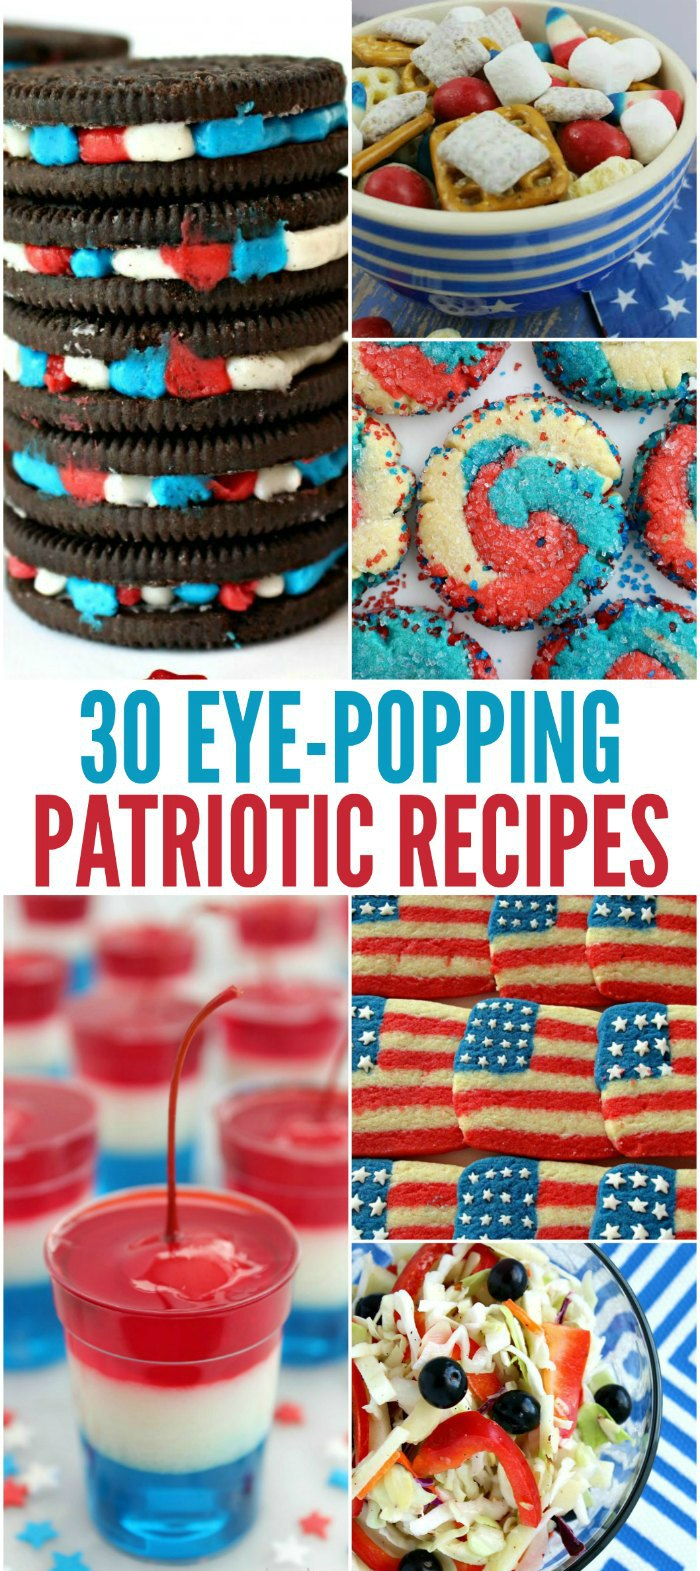 30 Eye-Popping Patriotic Recipes. Perfect for a 4th of July picnic, Memorial Day backyard BBQ or Veteran's Day neighborhood gathering | The Jenny Evolution